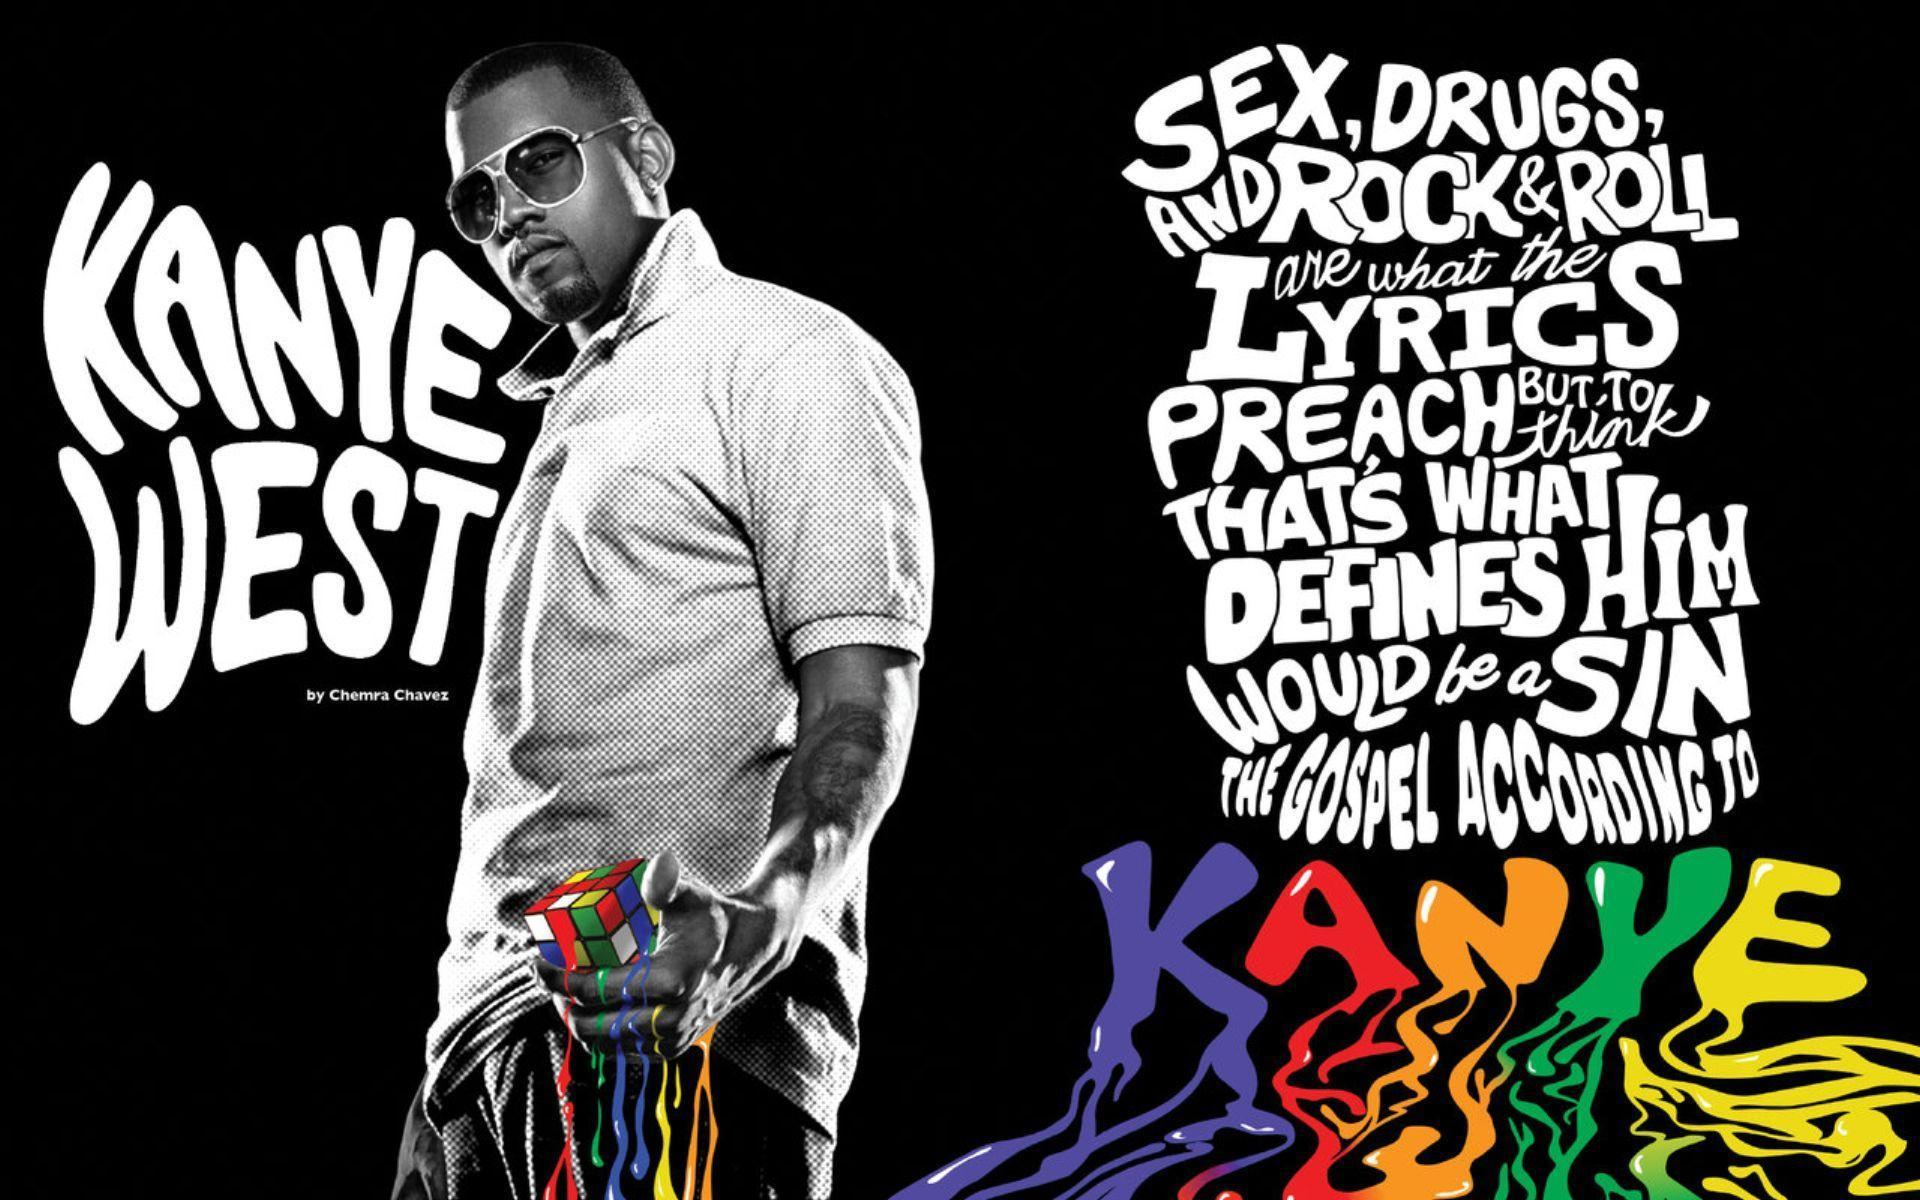 Kanye West Backgrounds | HD Wallpapers, Backgrounds, Images, Art ...